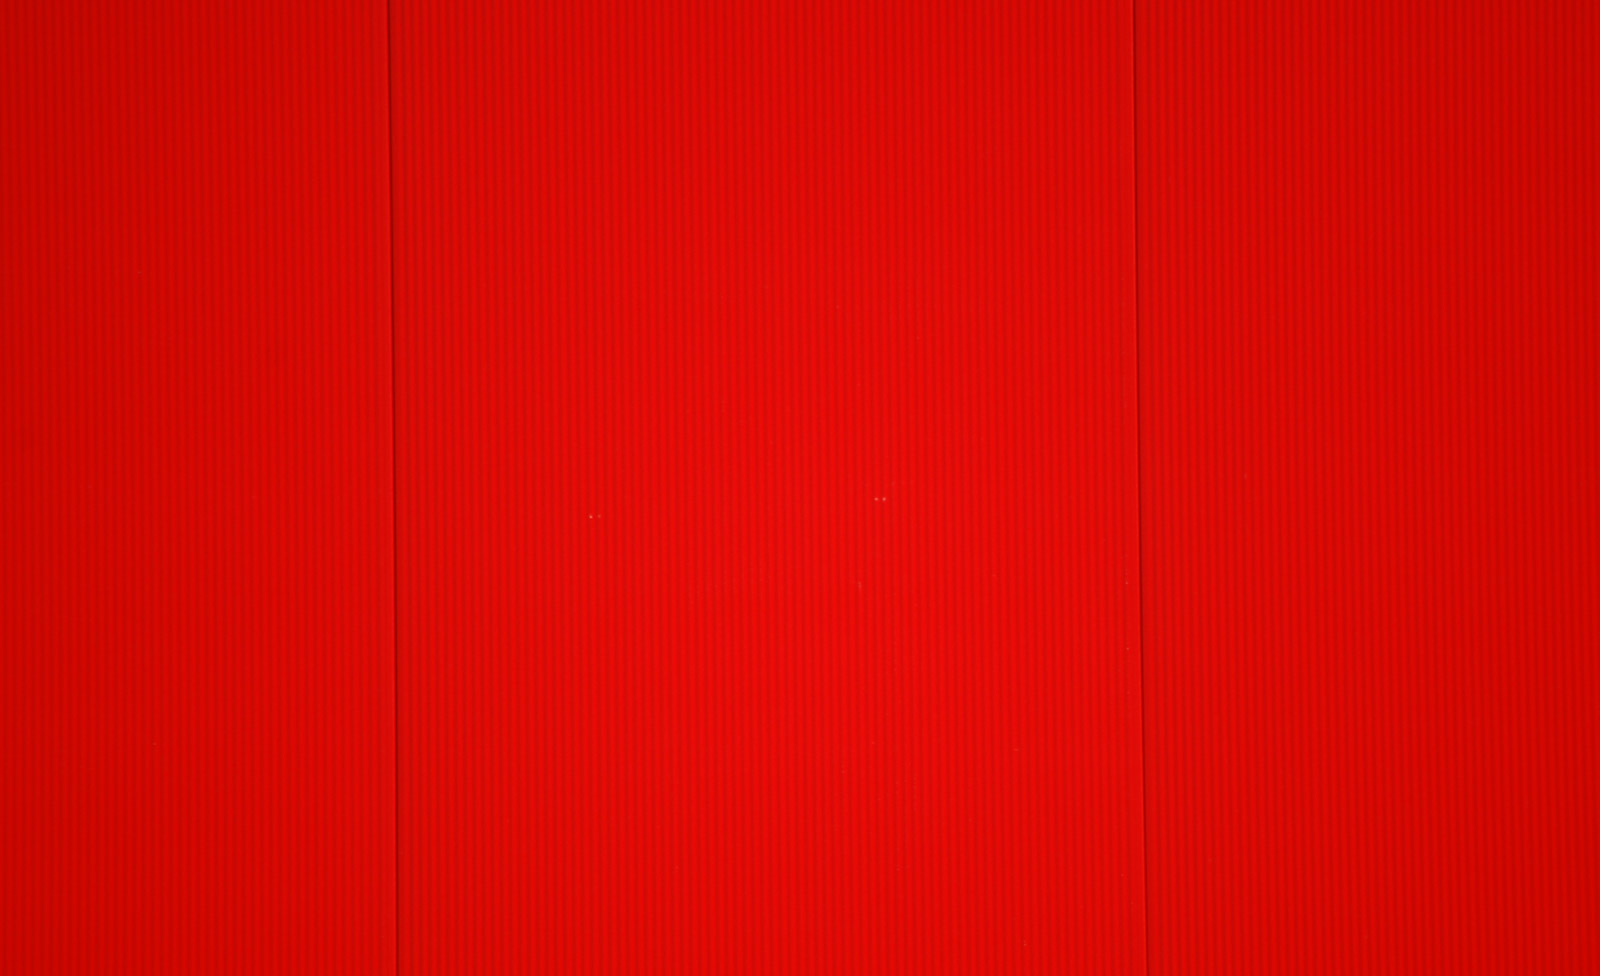 red plastic material texture, plastic, download photo, red plastic texture background